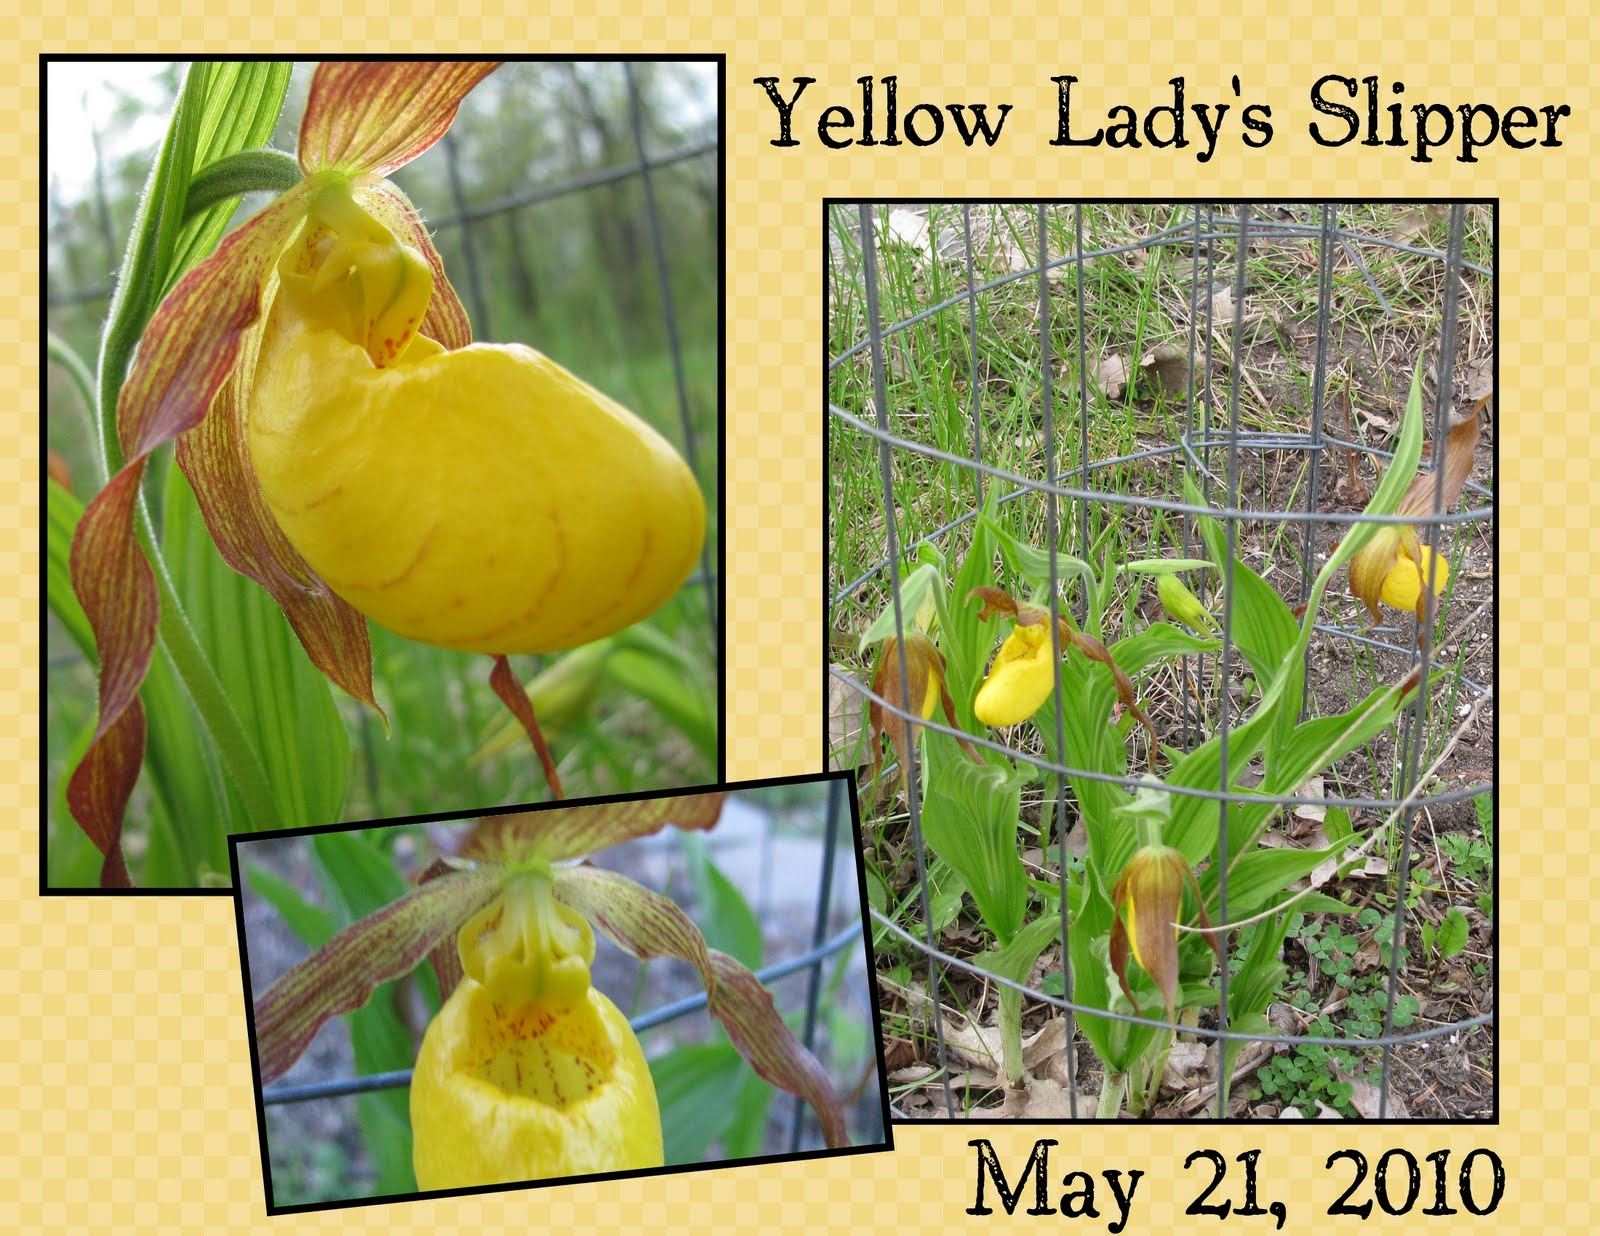 Far side of fifty yellow ladys slippers in minnesota you can dig up and move lady slippers with the permission of the property owner i am not sure why you would do thispossibly in the case of mightylinksfo